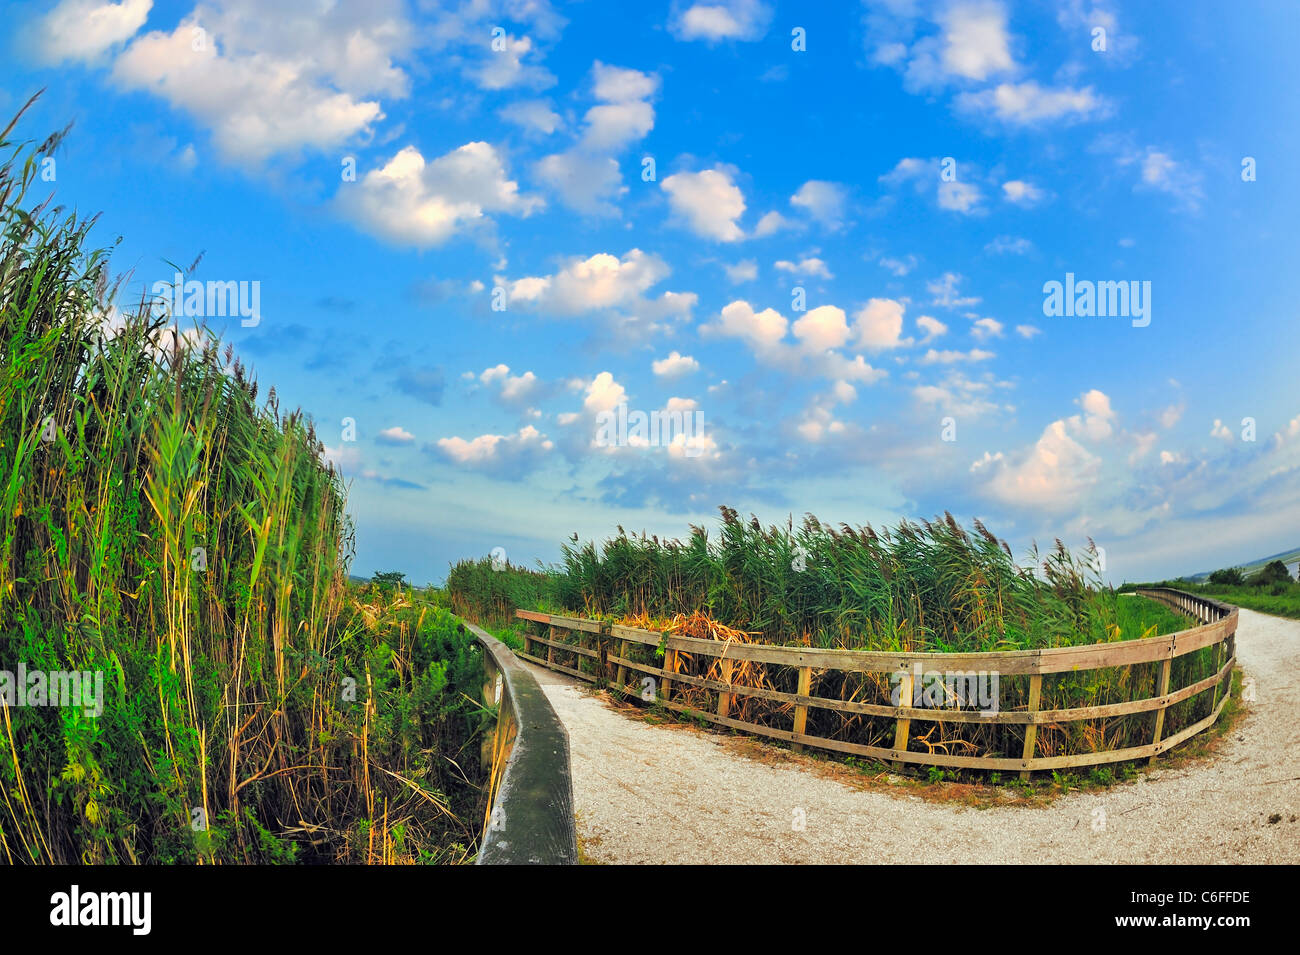 Marshland, tall reeds blowing in wind, with pebble path and curved wood fences around marsh grass, clouds, Levy - Stock Image